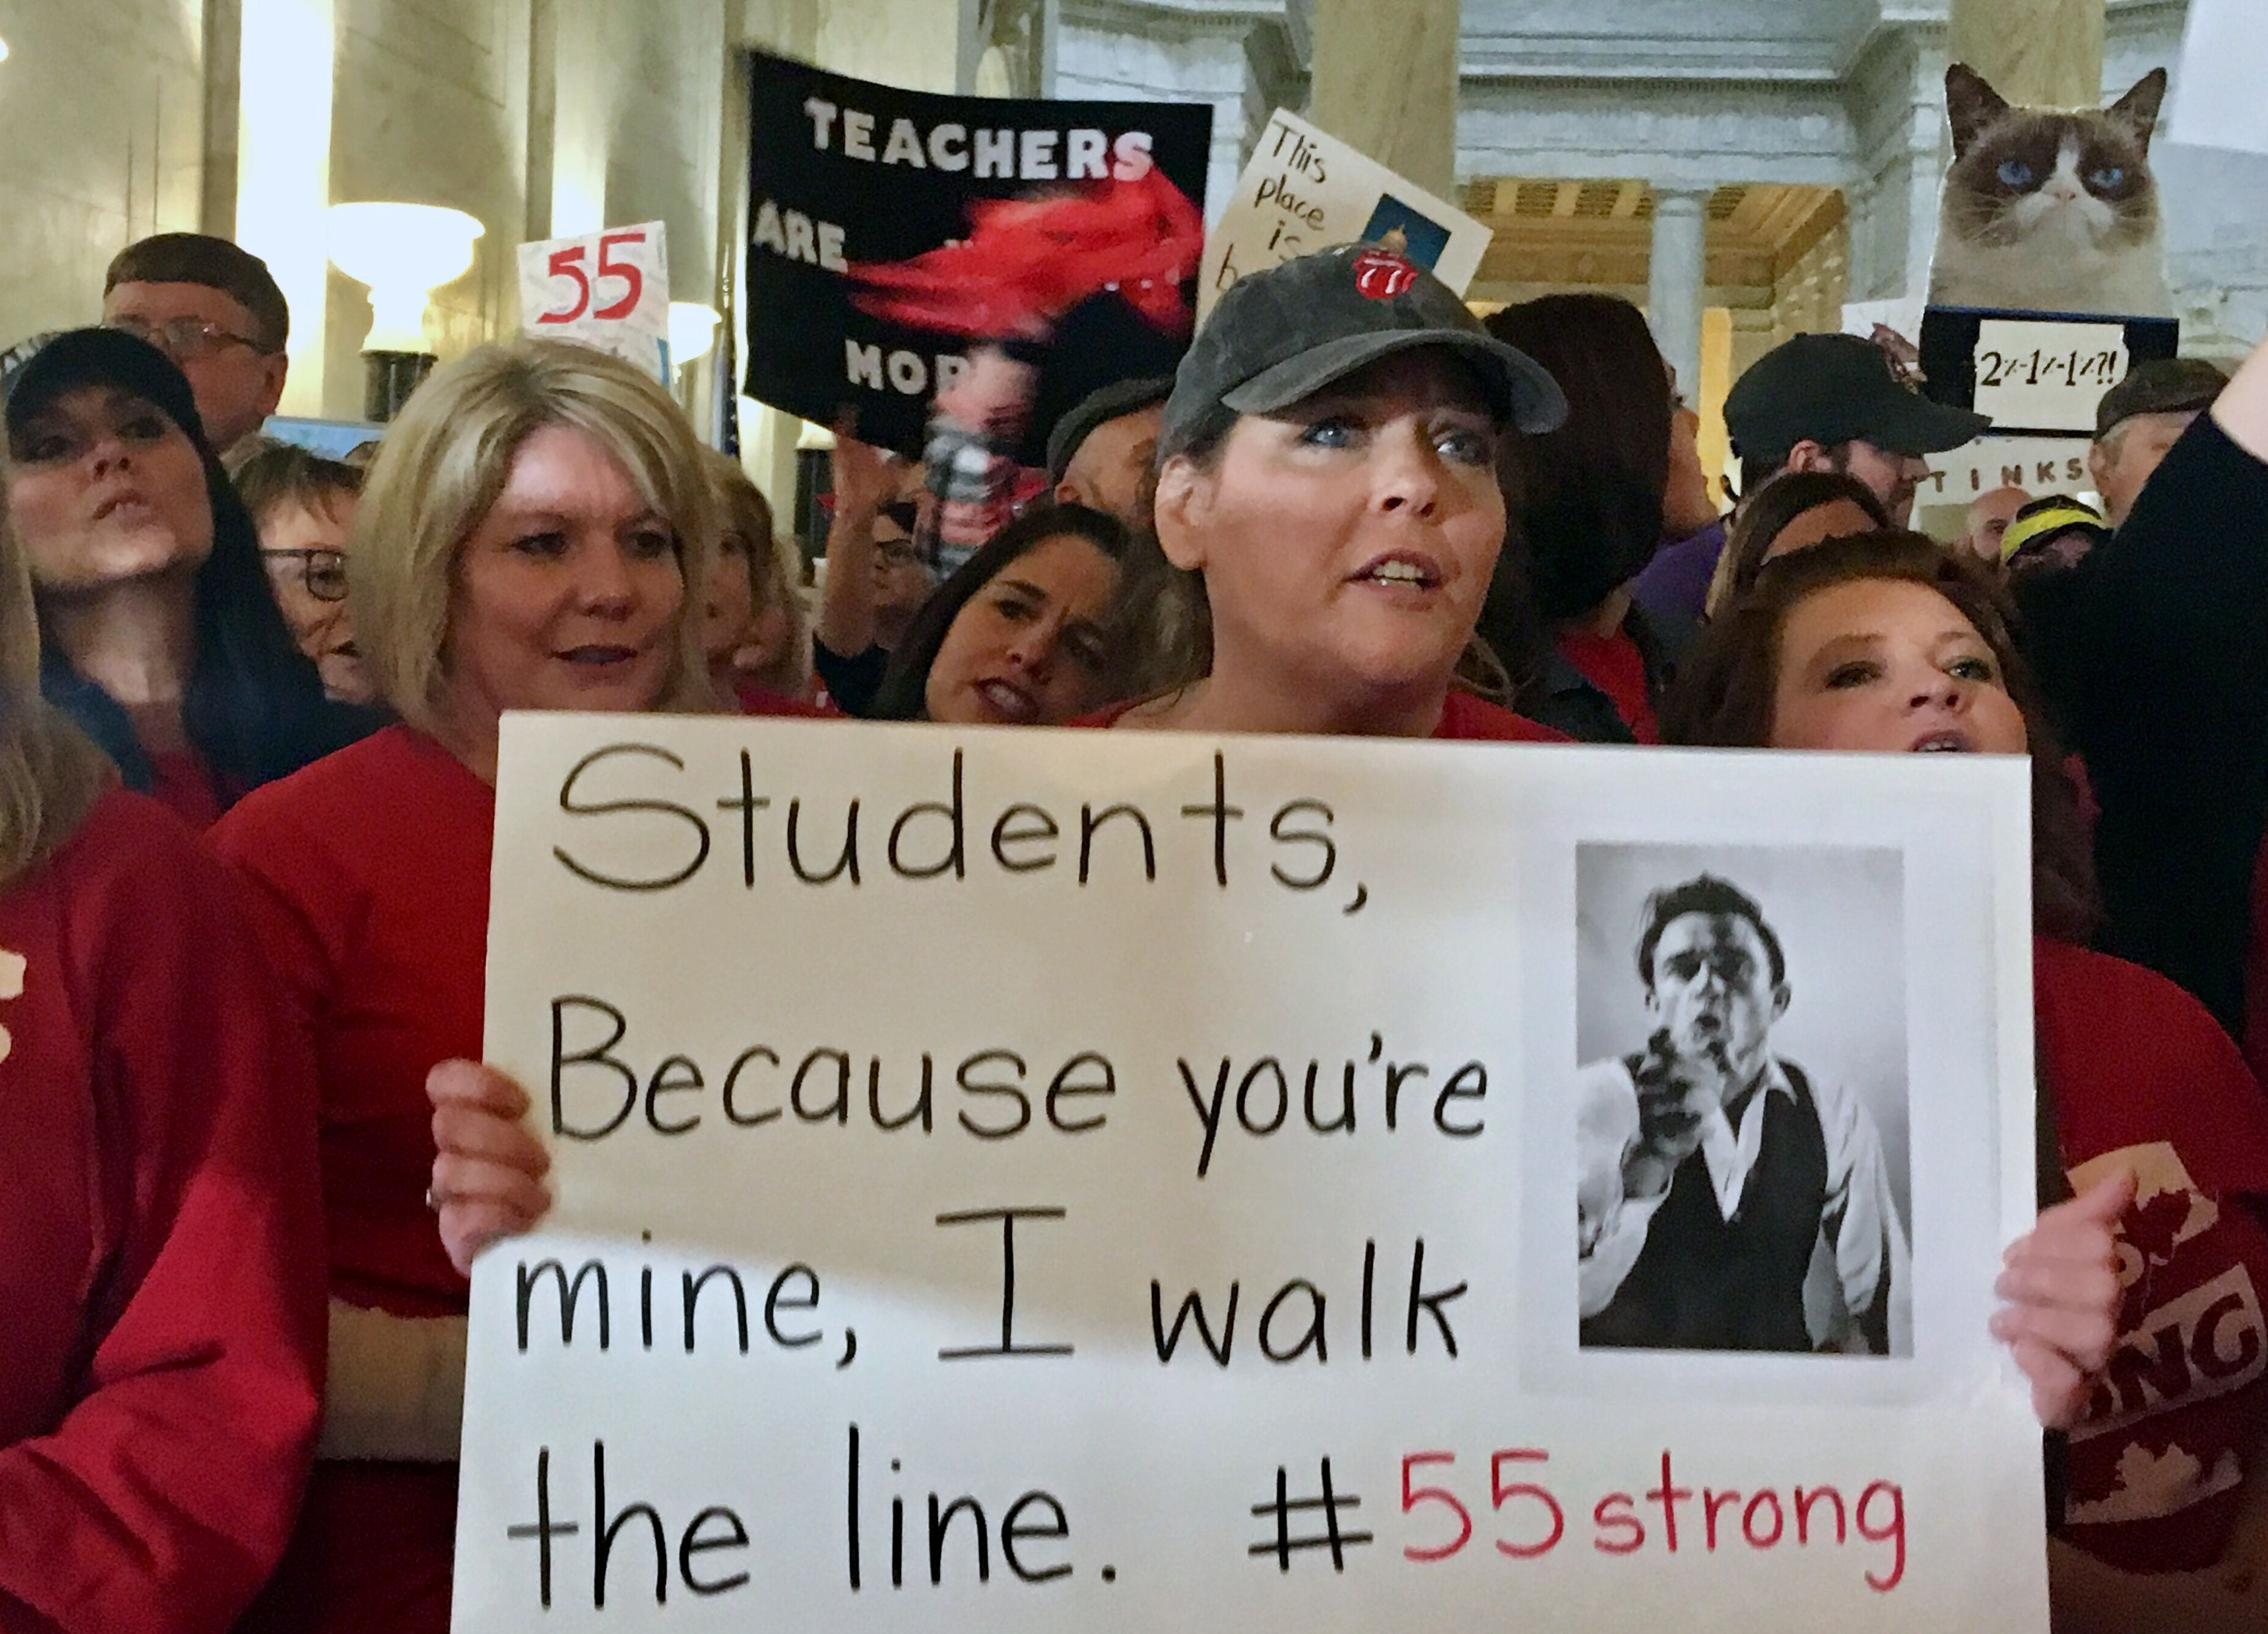 Jennifer Hanner, a first-year teacher from Harts, W.Va., center, holds a sign, outside the state Senate chambers at the Capitol in Charleston, W.Va. Teachers statewide went on strike Thursday over pay and benefits                       Teacher Pay, Charleston, USA - 22 Feb 2018